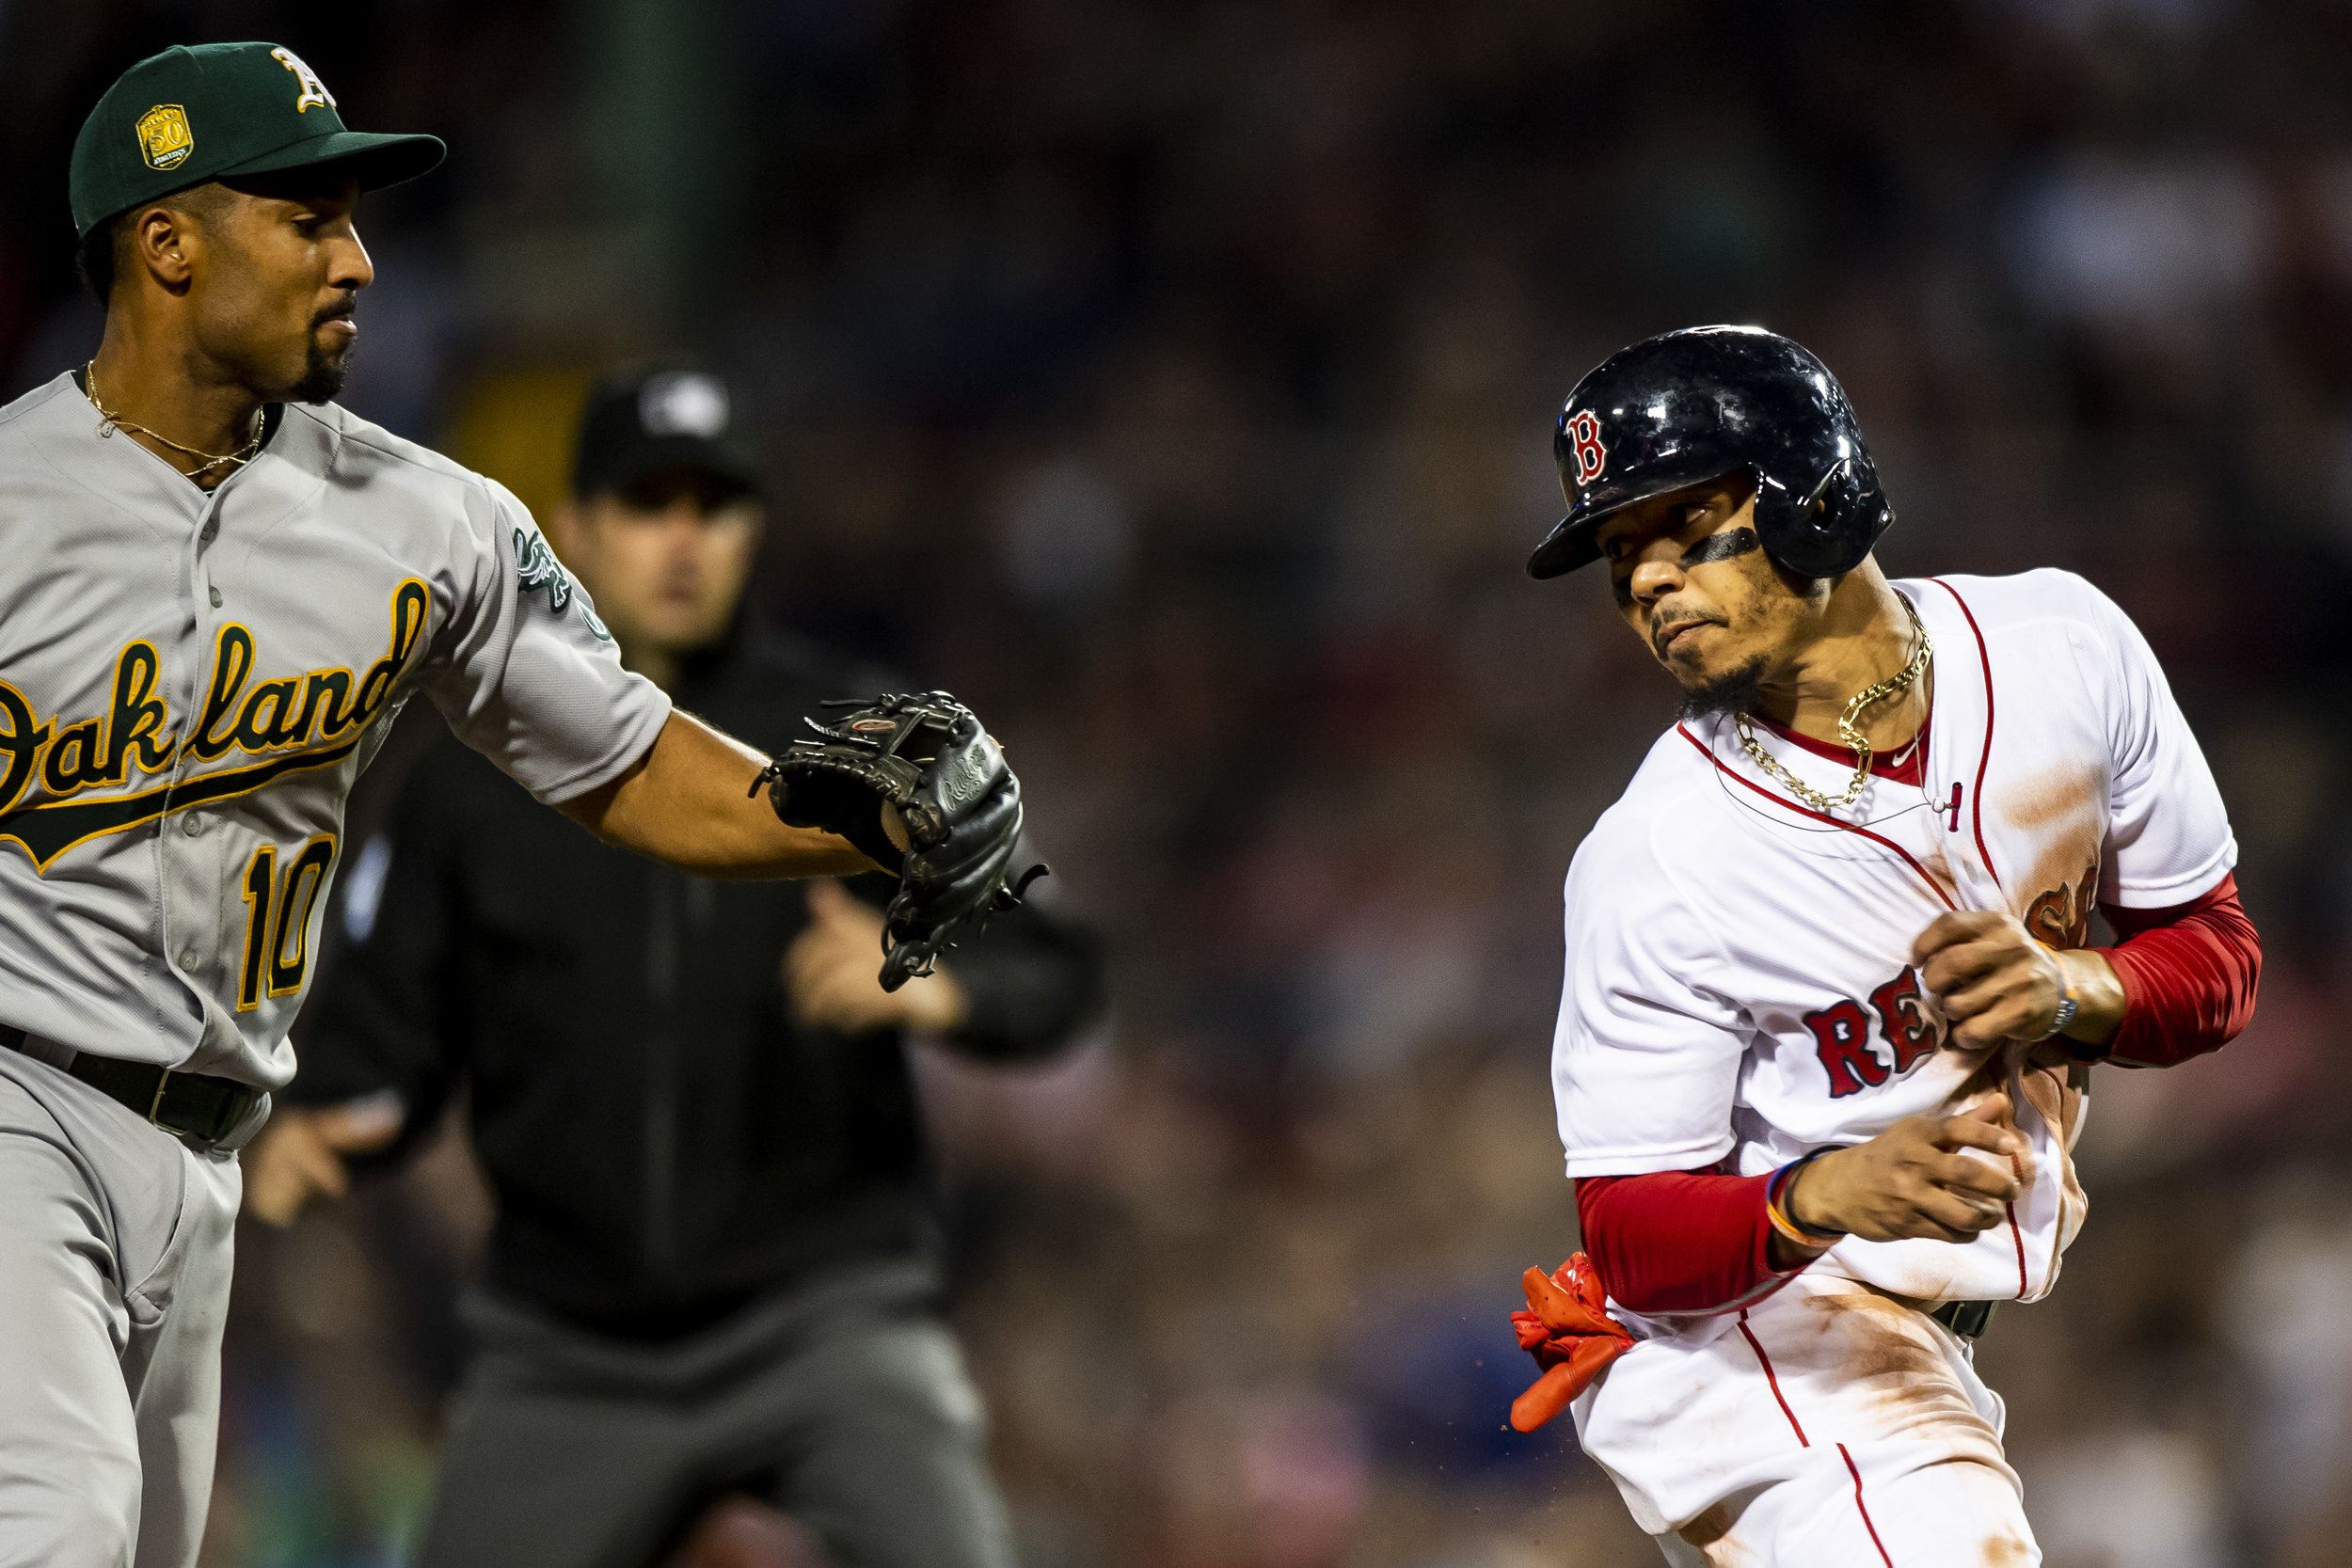 May 14, 2018, Boston, MA: Boston Red Sox outfielder Mookie Betts tries to avoid a tag in-between second base and third base in a rundown as the Boston Red Sox face the Oakland Athletics at Fenway Park in Boston, Massachusetts Monday, May 14, 2018. (Photo by Matthew Thomas/Boston Red Sox)